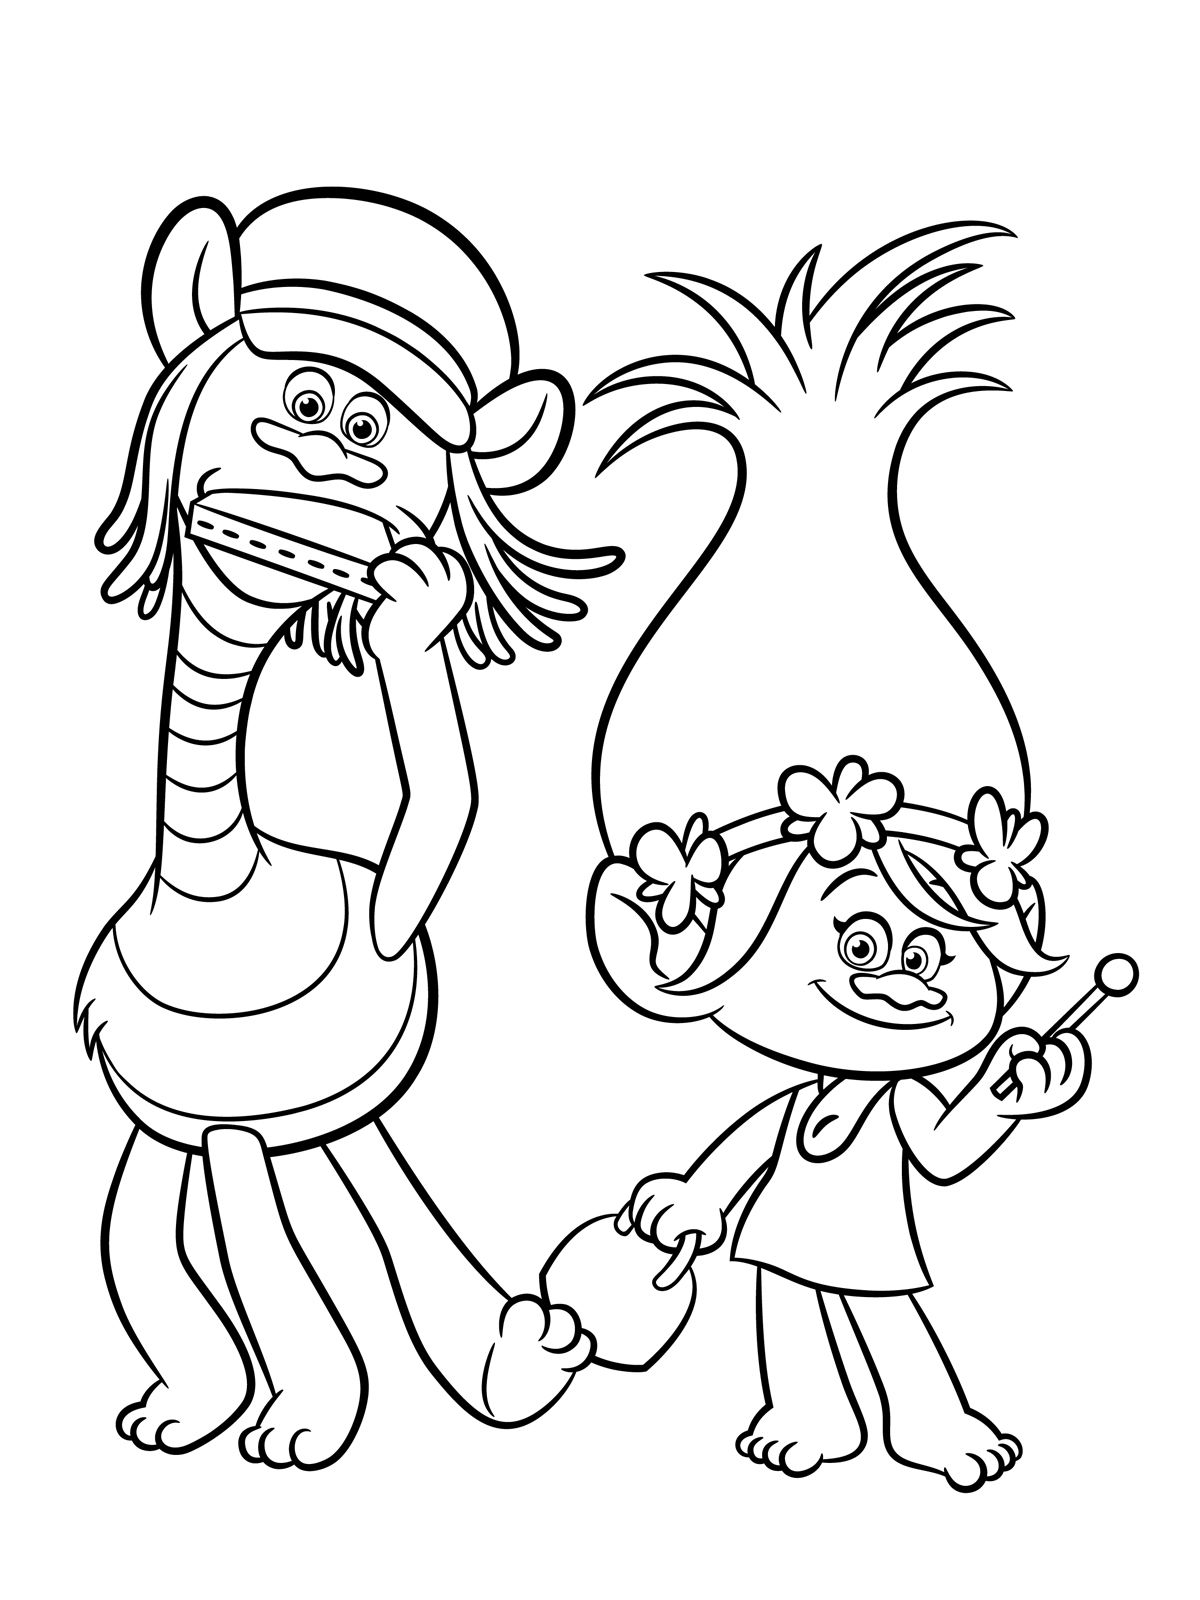 coloring page for kids caillou coloring pages best coloring pages for kids for kids page coloring